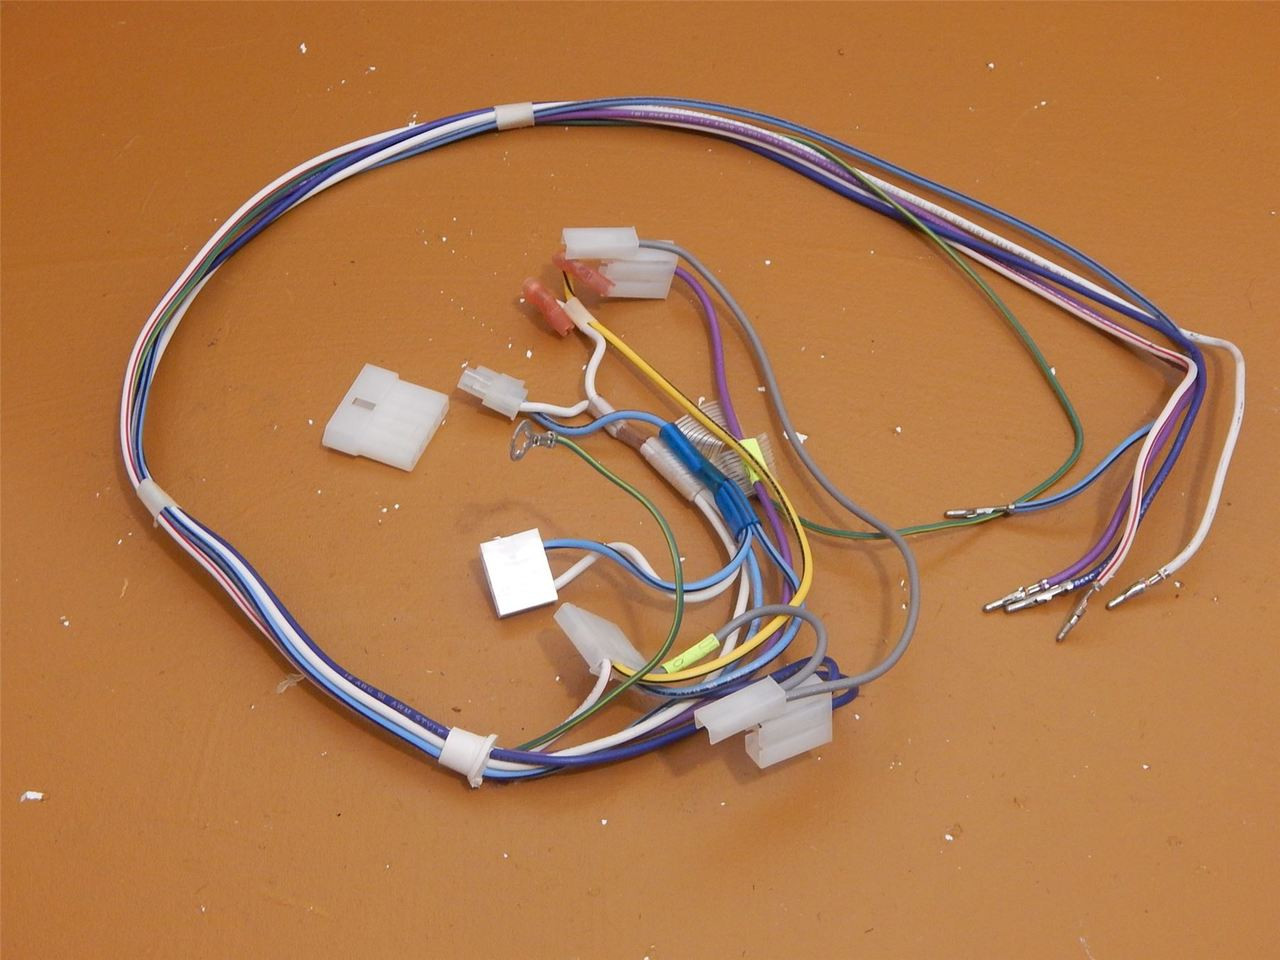 small resolution of whirlpool side by side refrigerator ed5phexnq00 dispenser wire harness 2311641 ice cold beer appliance parts